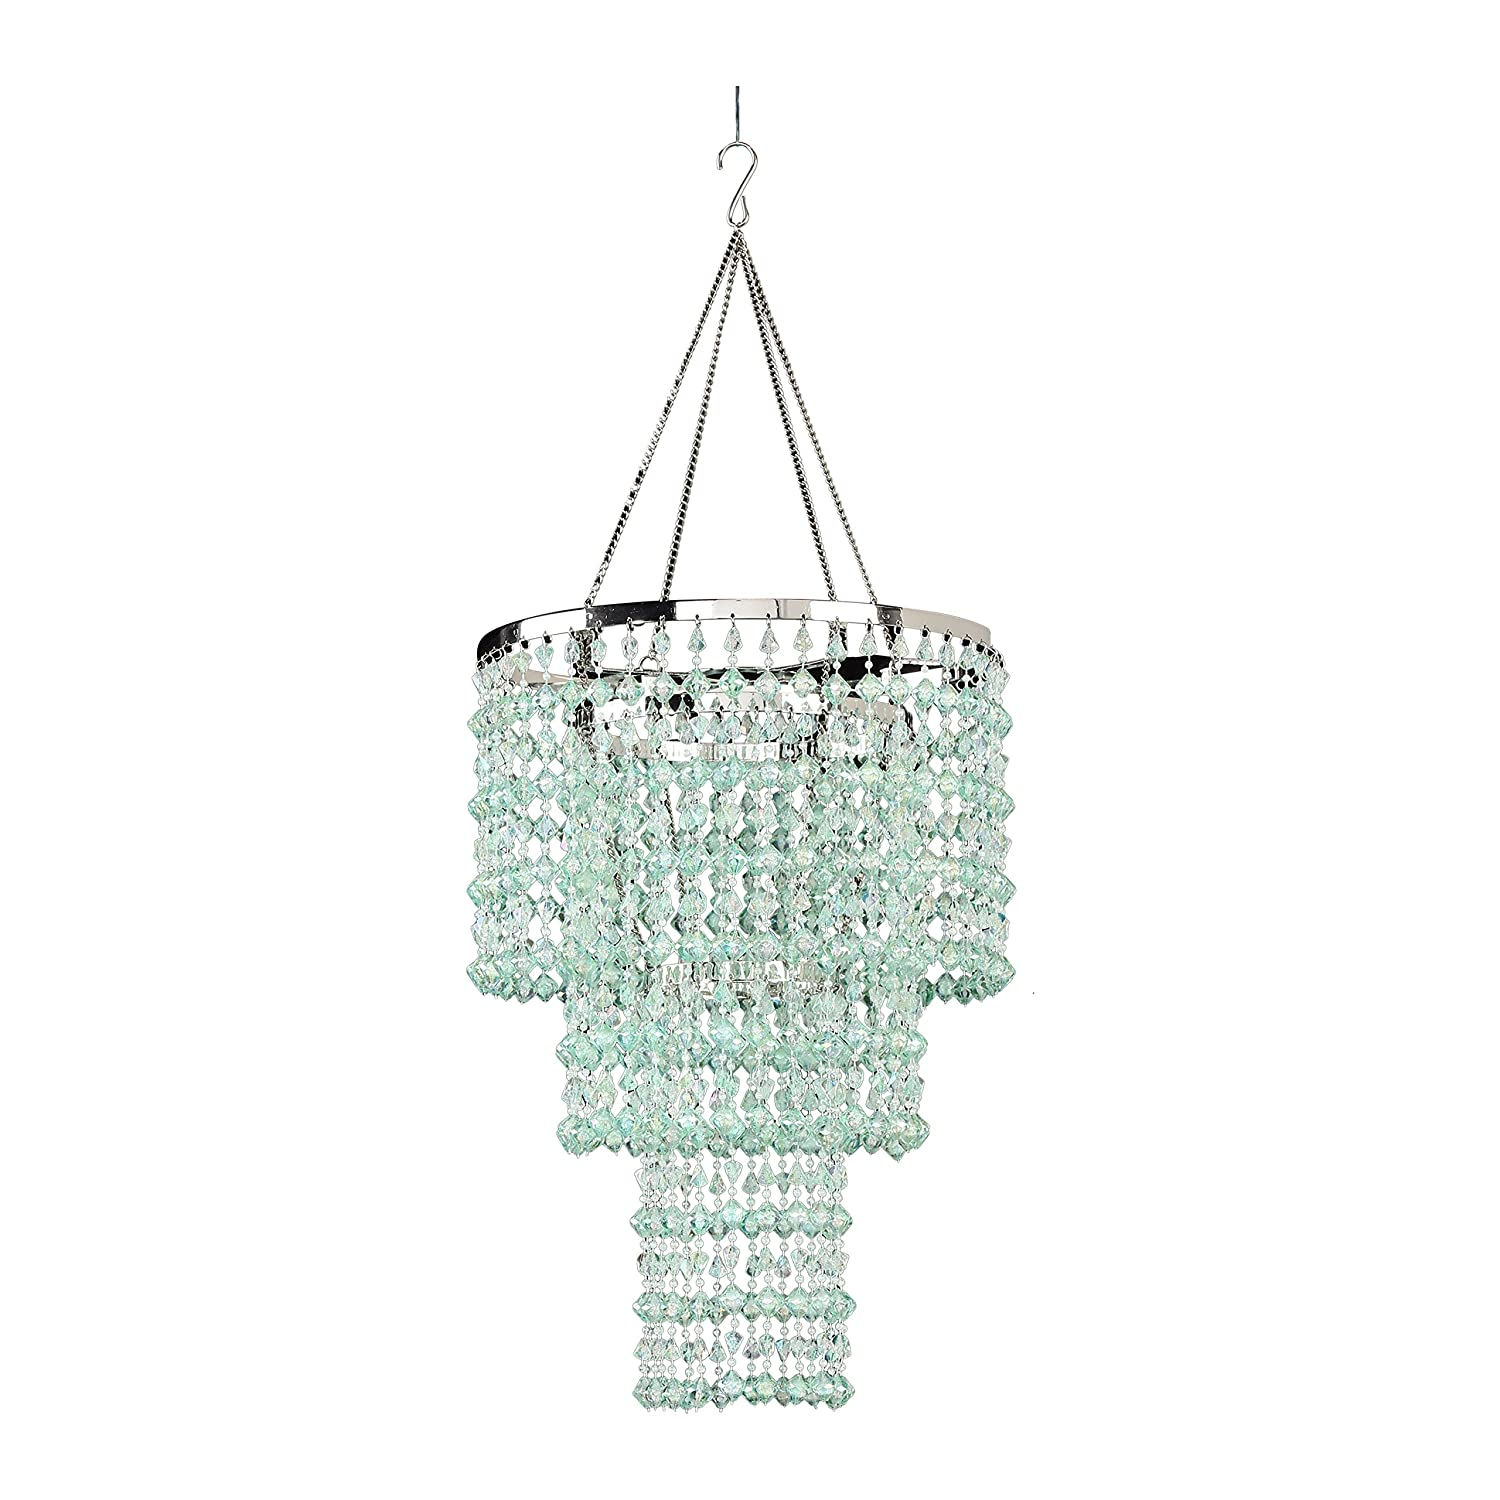 Amazon zappobz hll14 gemstone chandelier mint green home amazon zappobz hll14 gemstone chandelier mint green home kitchen arubaitofo Image collections